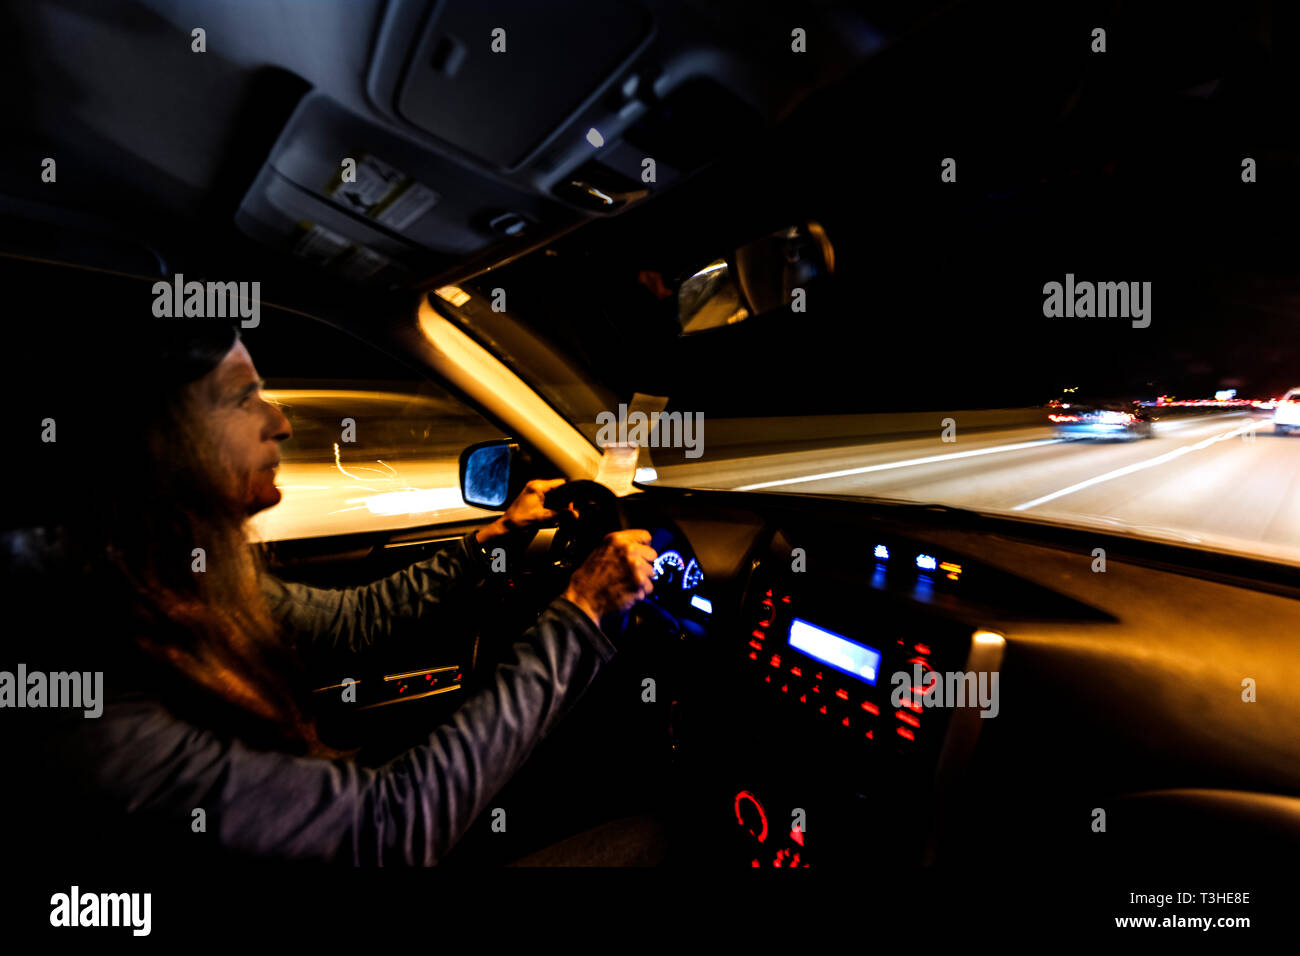 WA17076-00...WASHINGTON - Woman driving Interstate 5 at night near Seattle. (MR# S1) - Stock Image